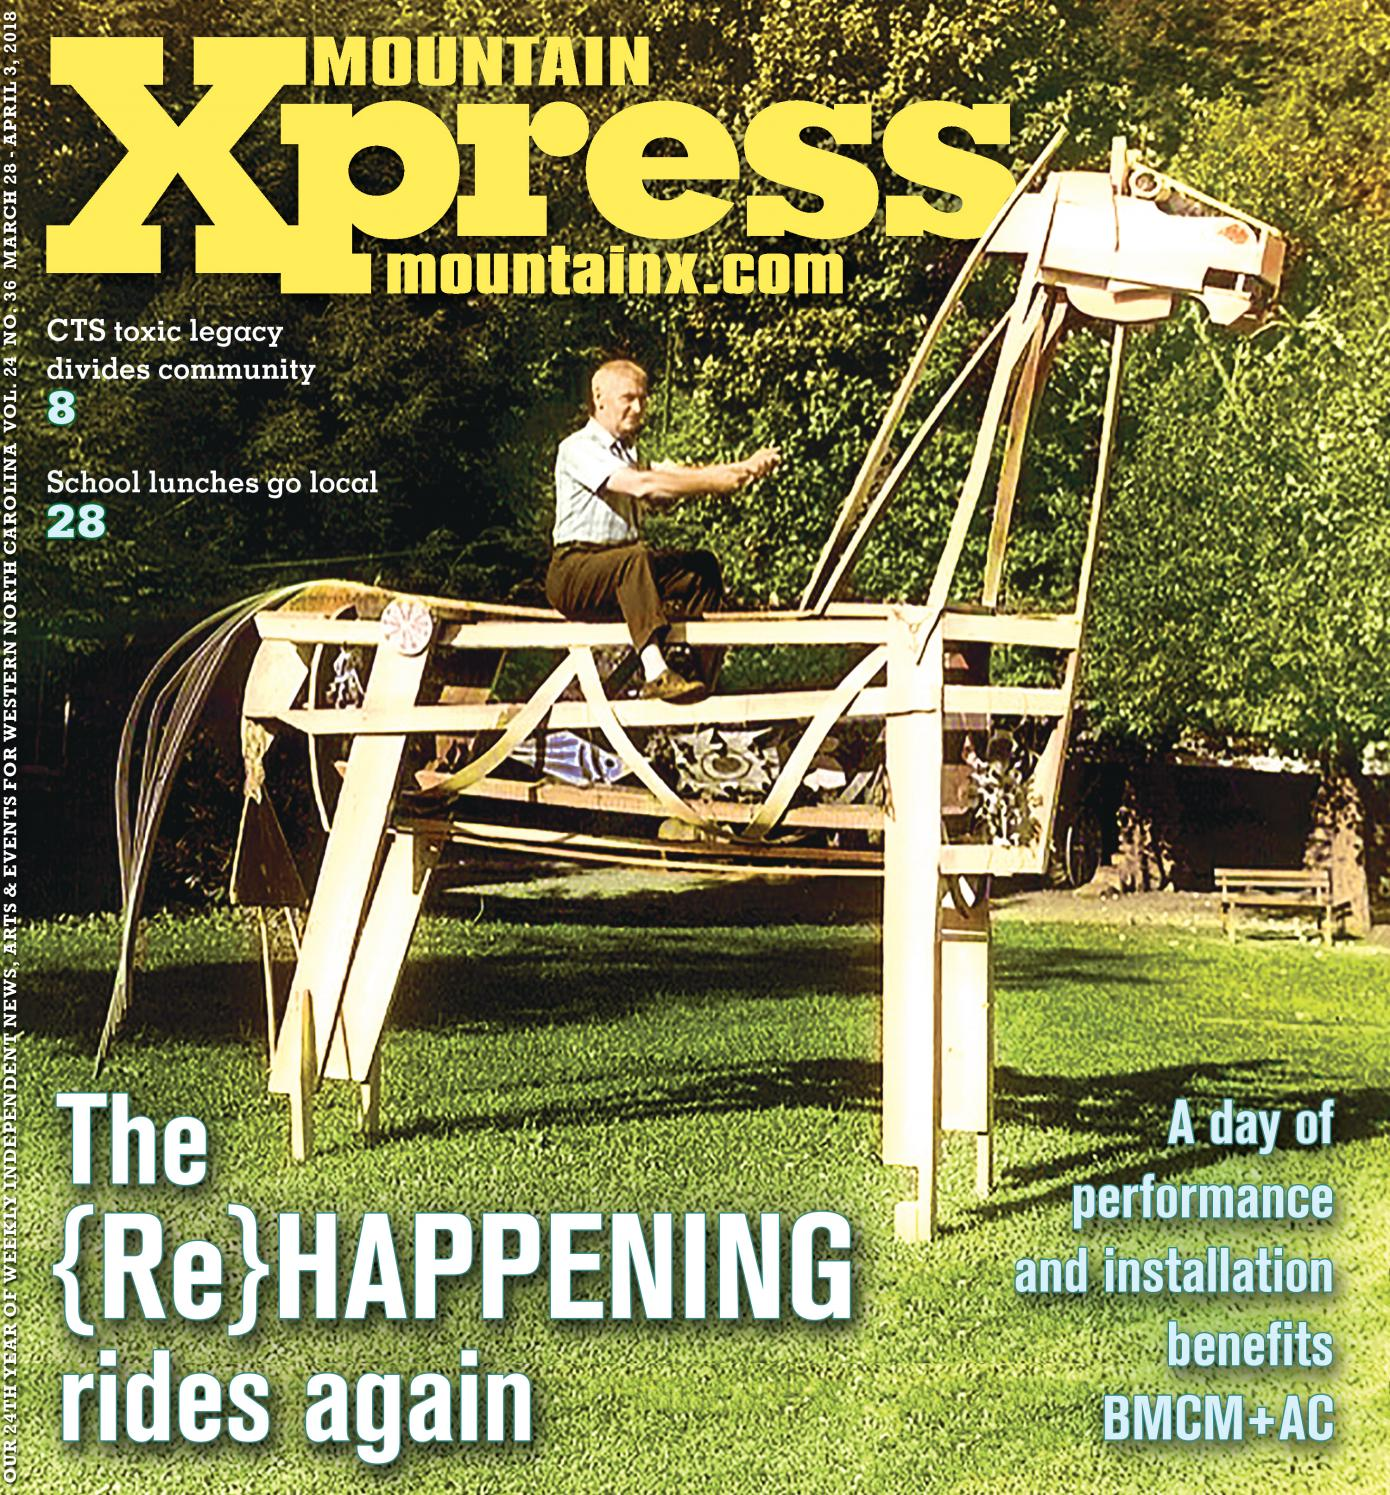 d475914825f8 Mountain Xpress 03.28.18 by Mountain Xpress - issuu